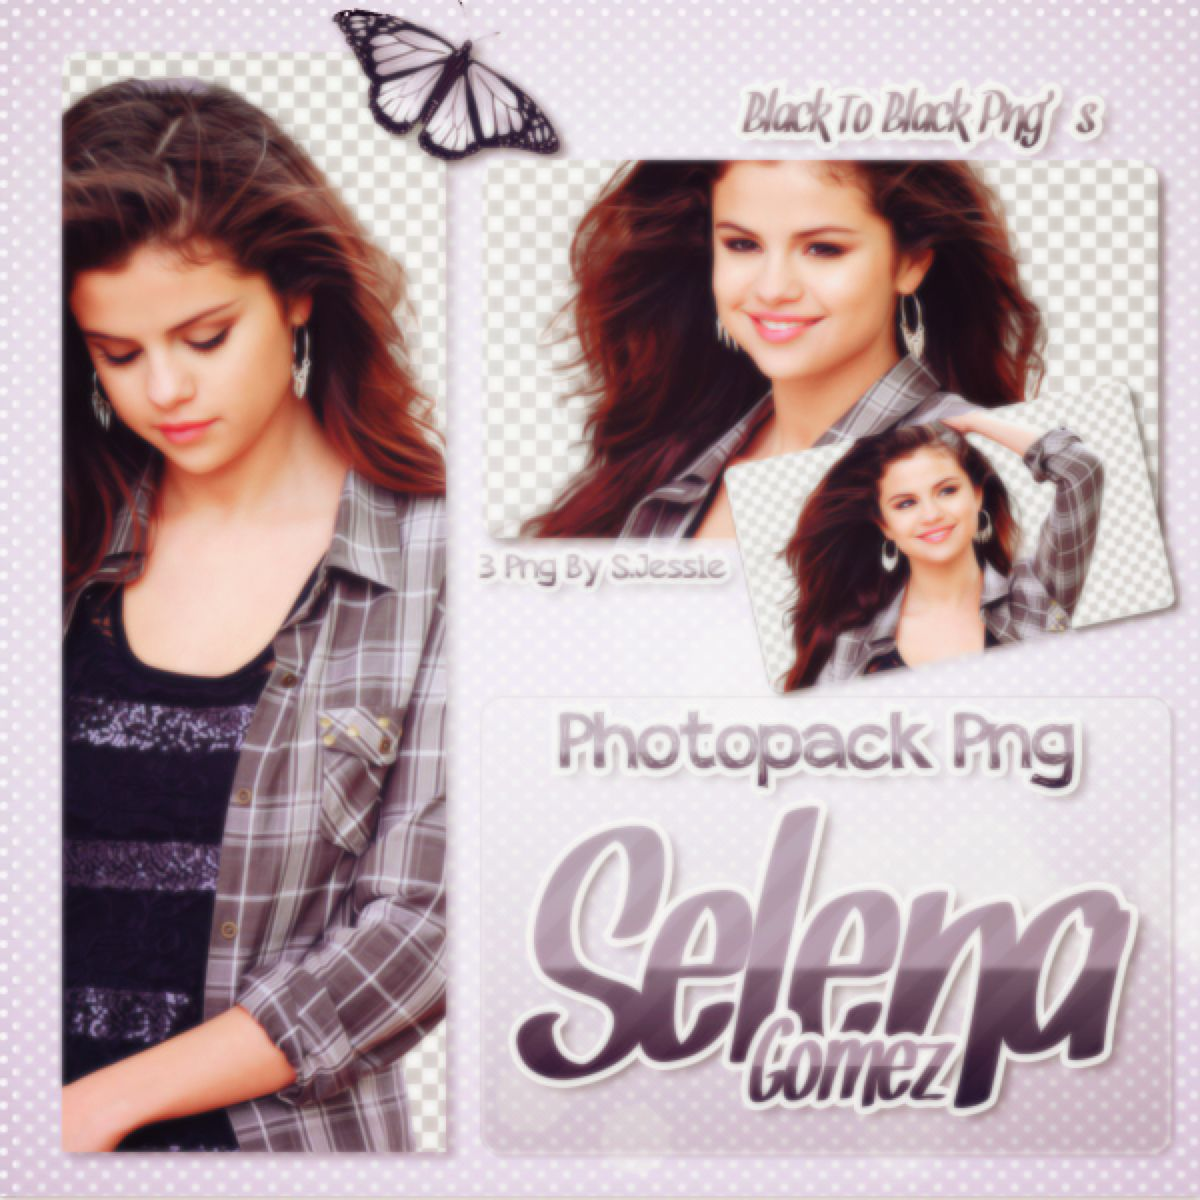 Selena Gomez Png Pack by S-JessiePNG on @DeviantArt